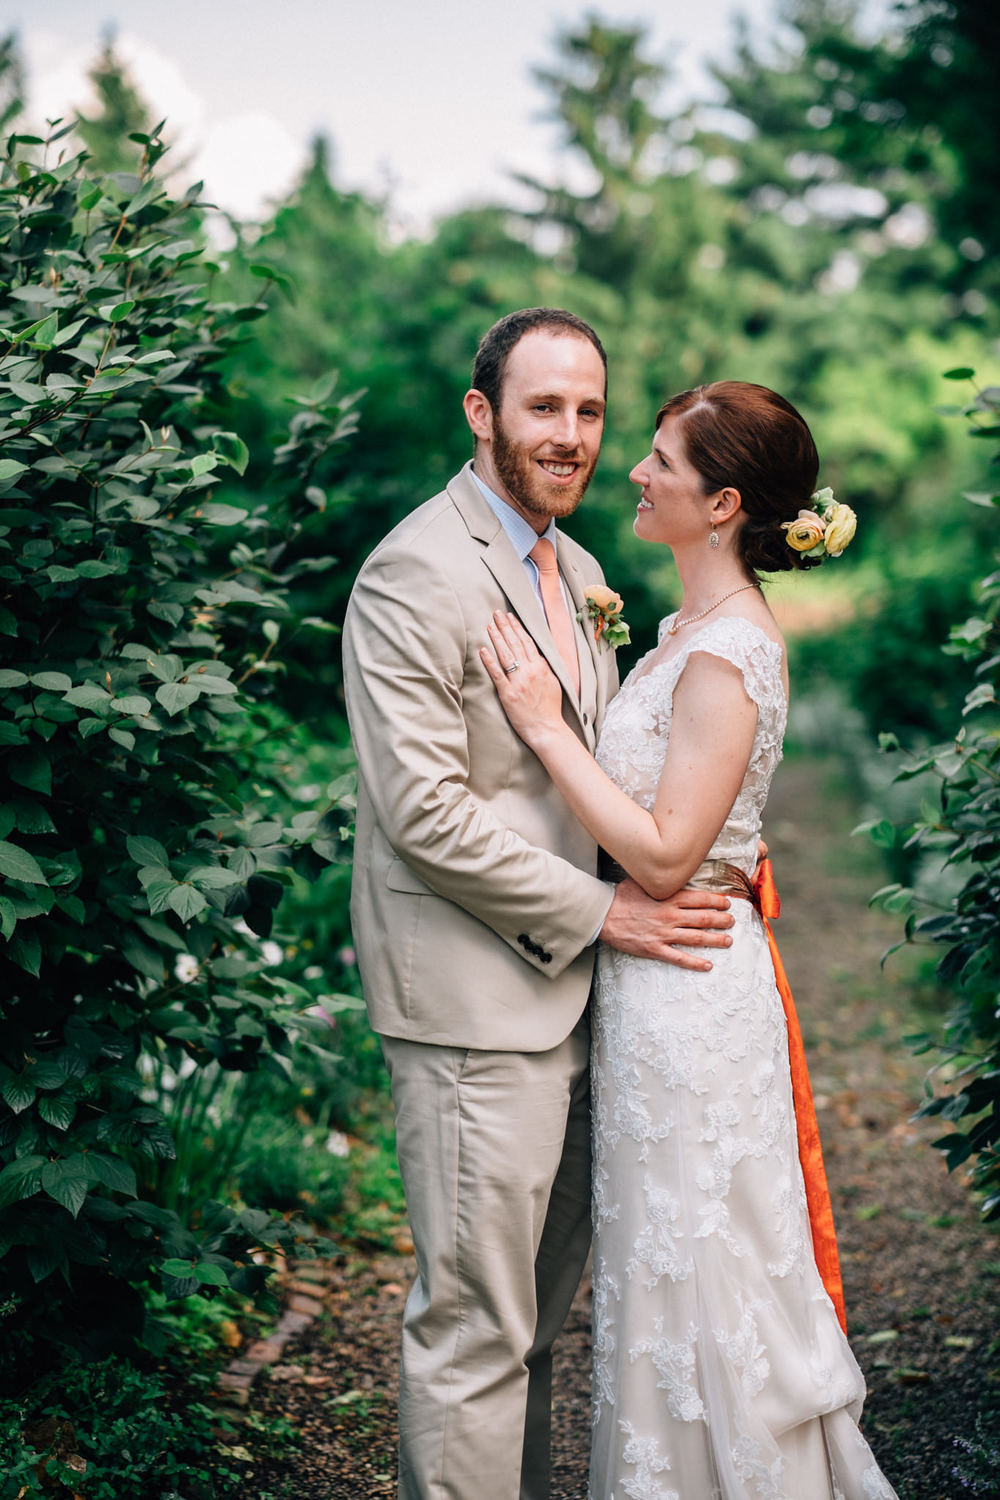 Amy&Blake_Wedding_Blog_081.jpg